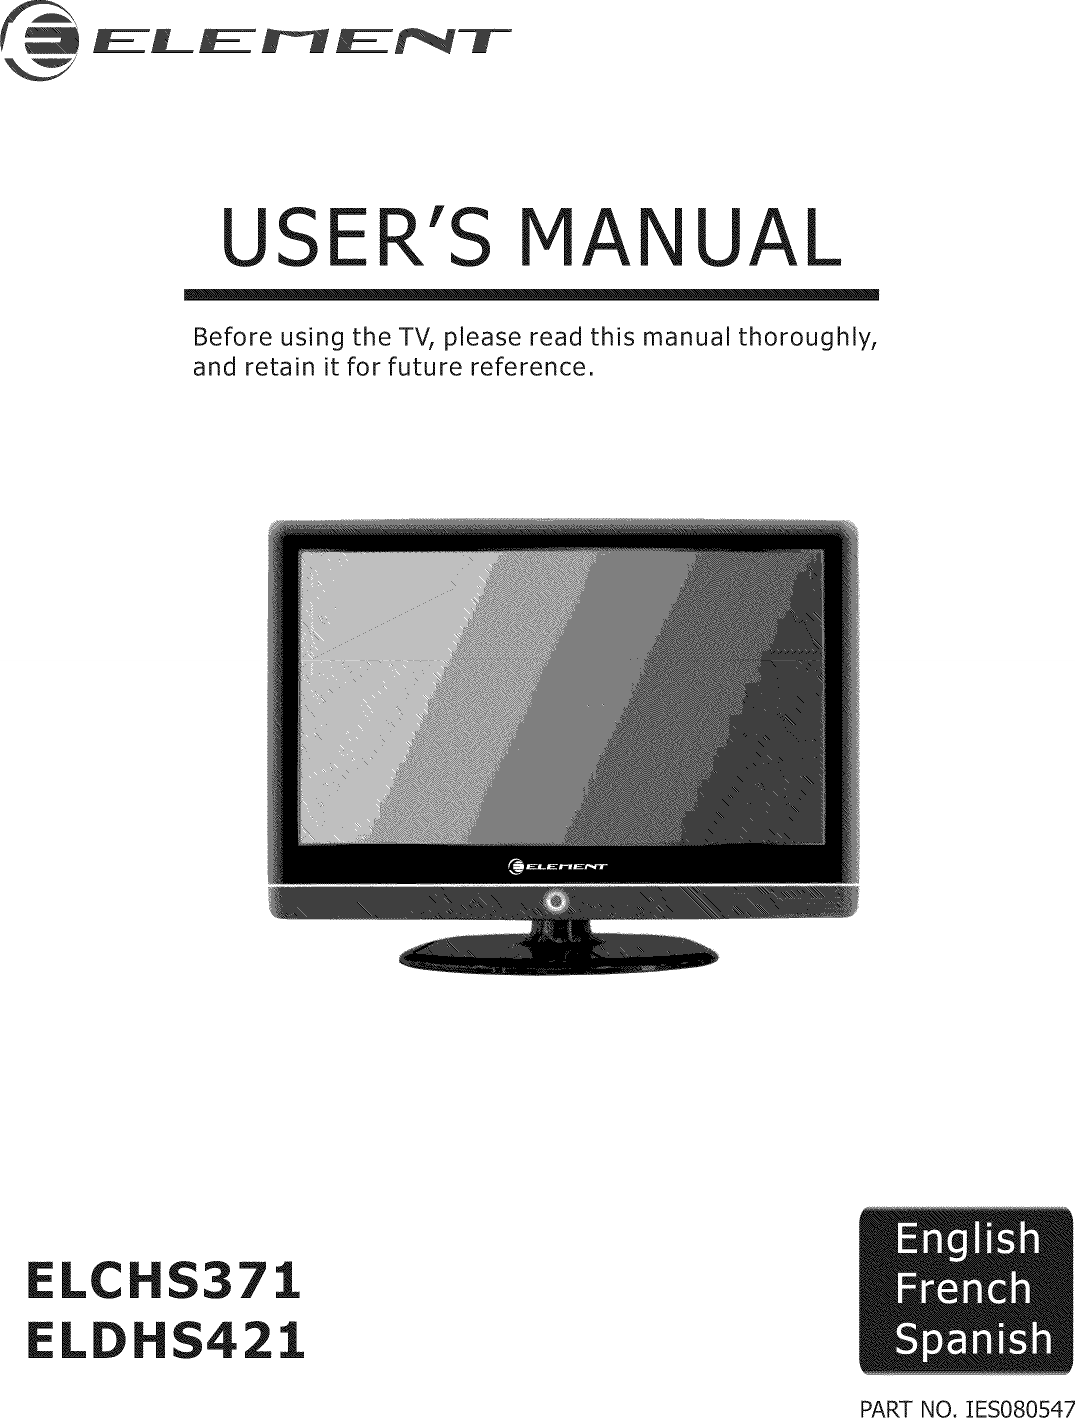 Element Elchs371 User Manual Tv Lcd Manuals And Guides L0811838 Computer Parts Diagram For Kids Users Will Label The